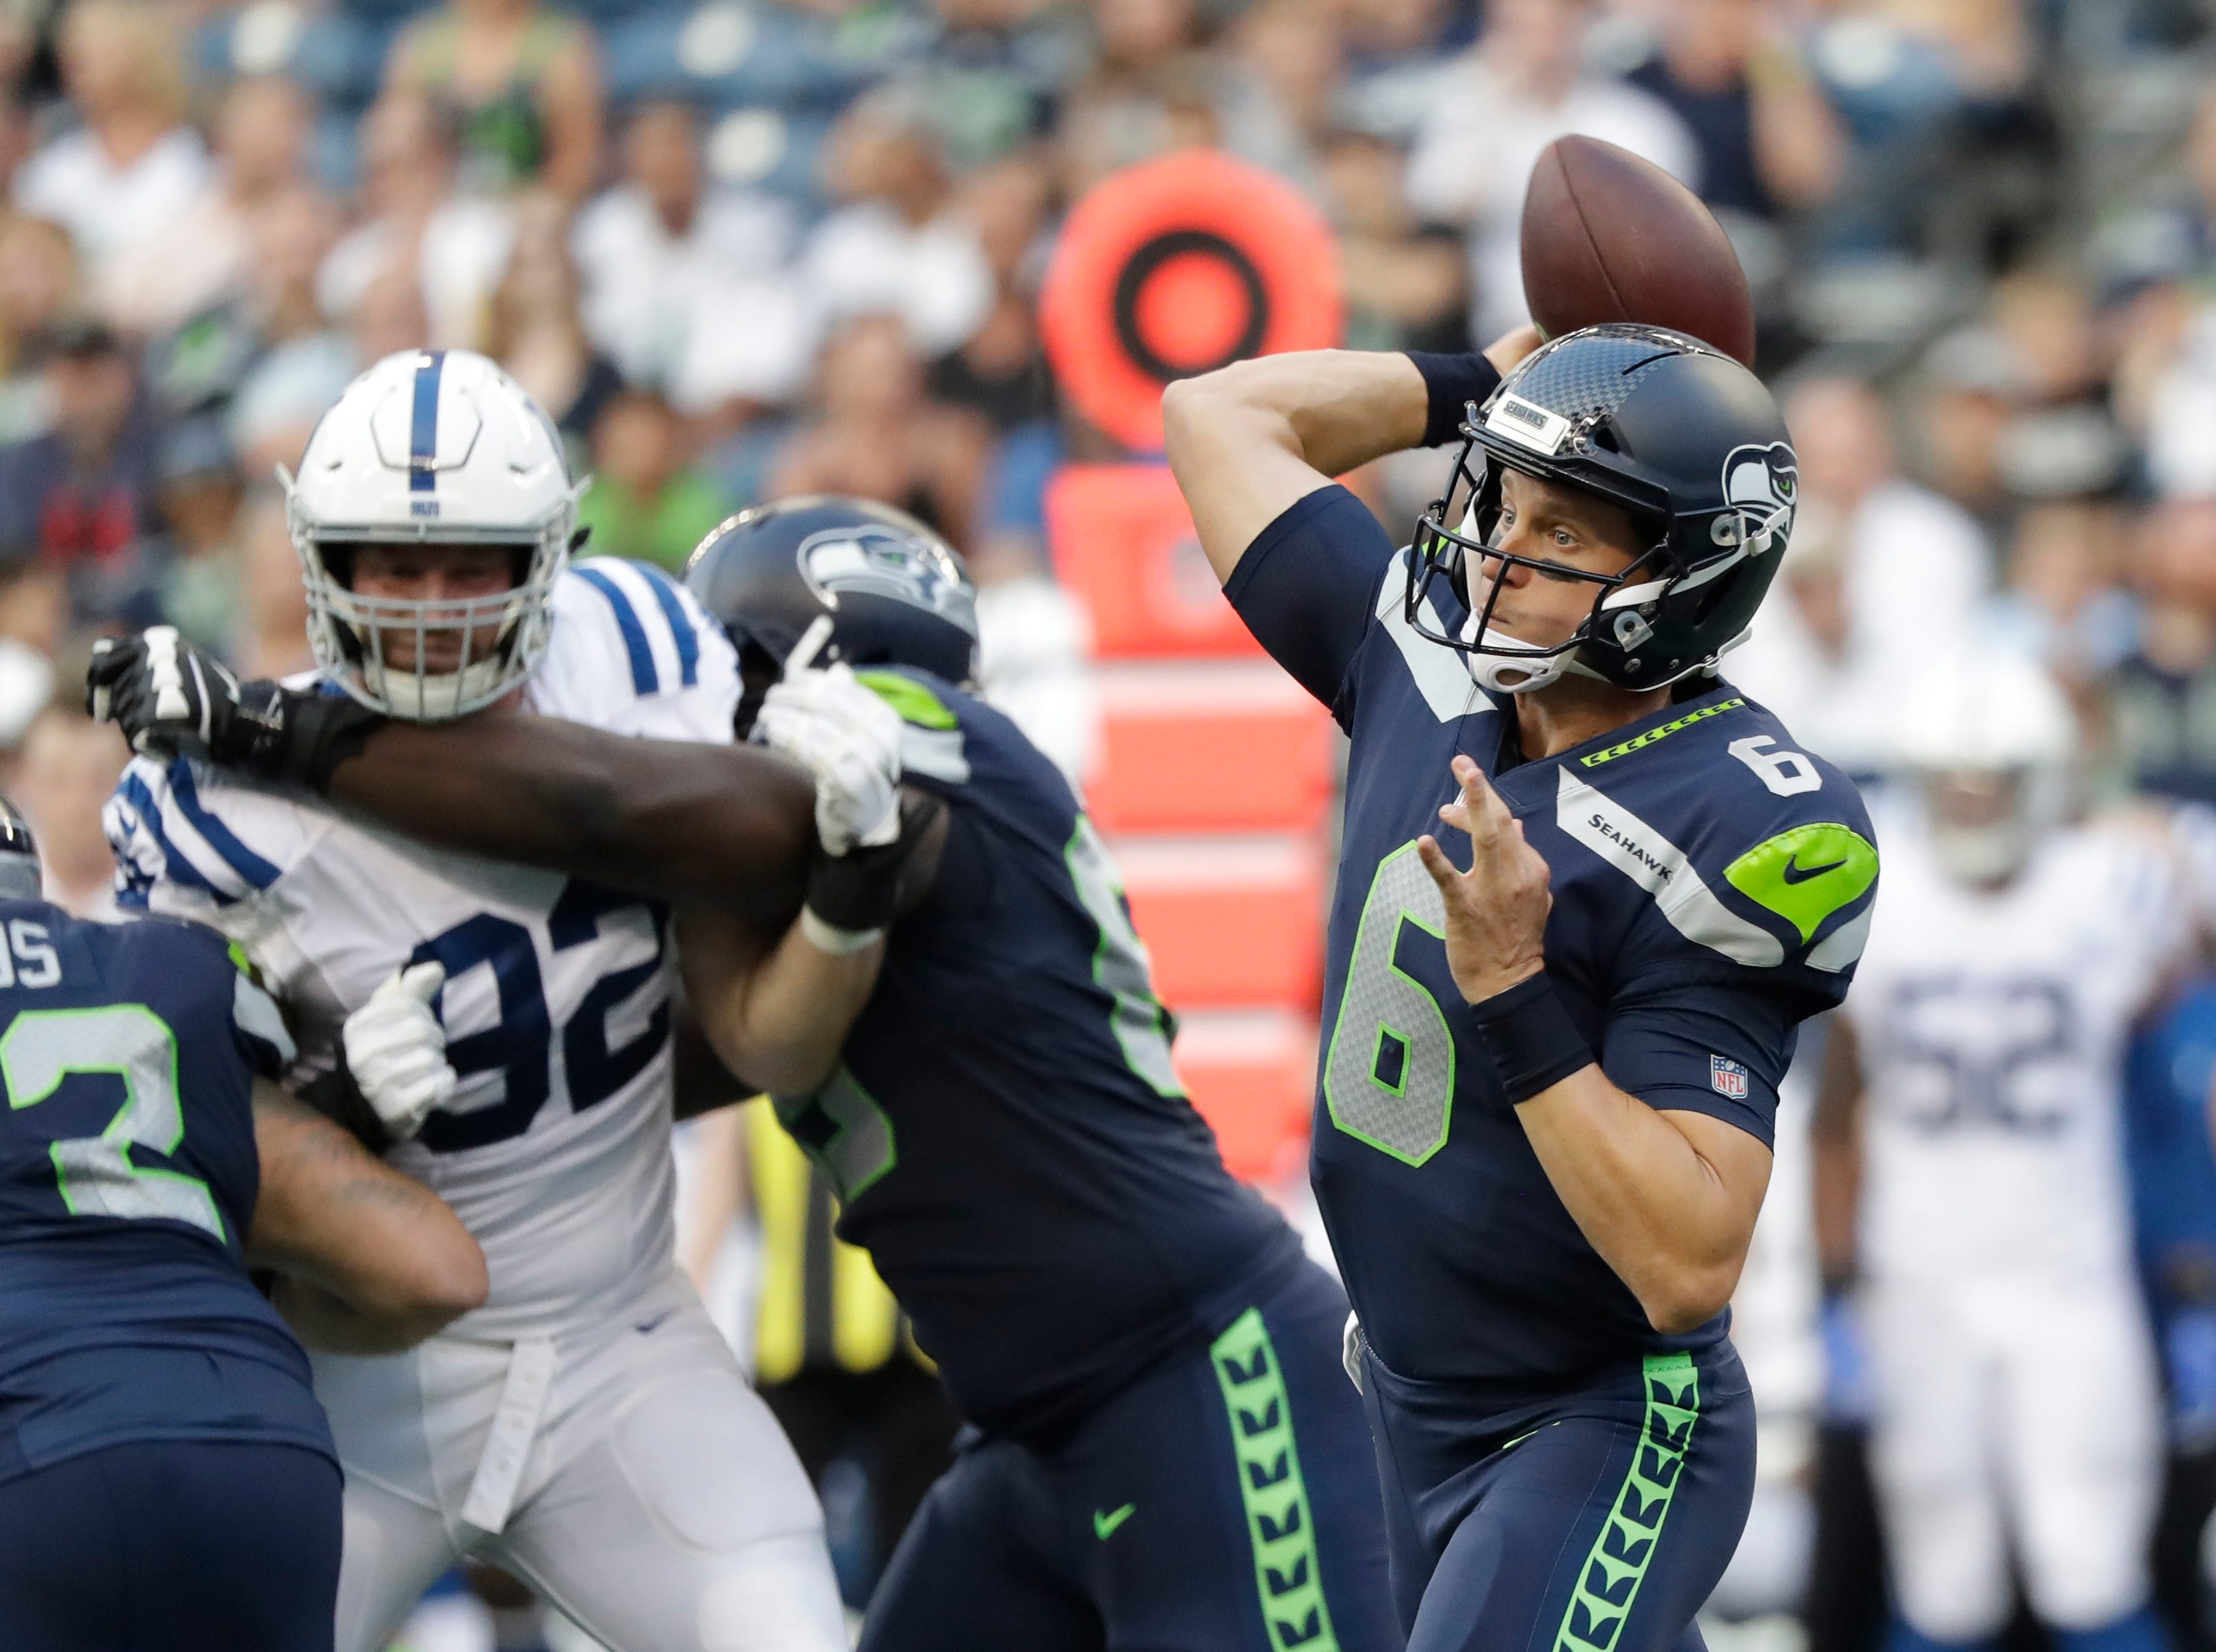 Seattle Seahawks quarterback Austin Davis passes against the Indianapolis Colts during the first half of an NFL football preseason game, Thursday, Aug. 9, 2018, in Seattle. (AP Photo/Elaine Thompson)